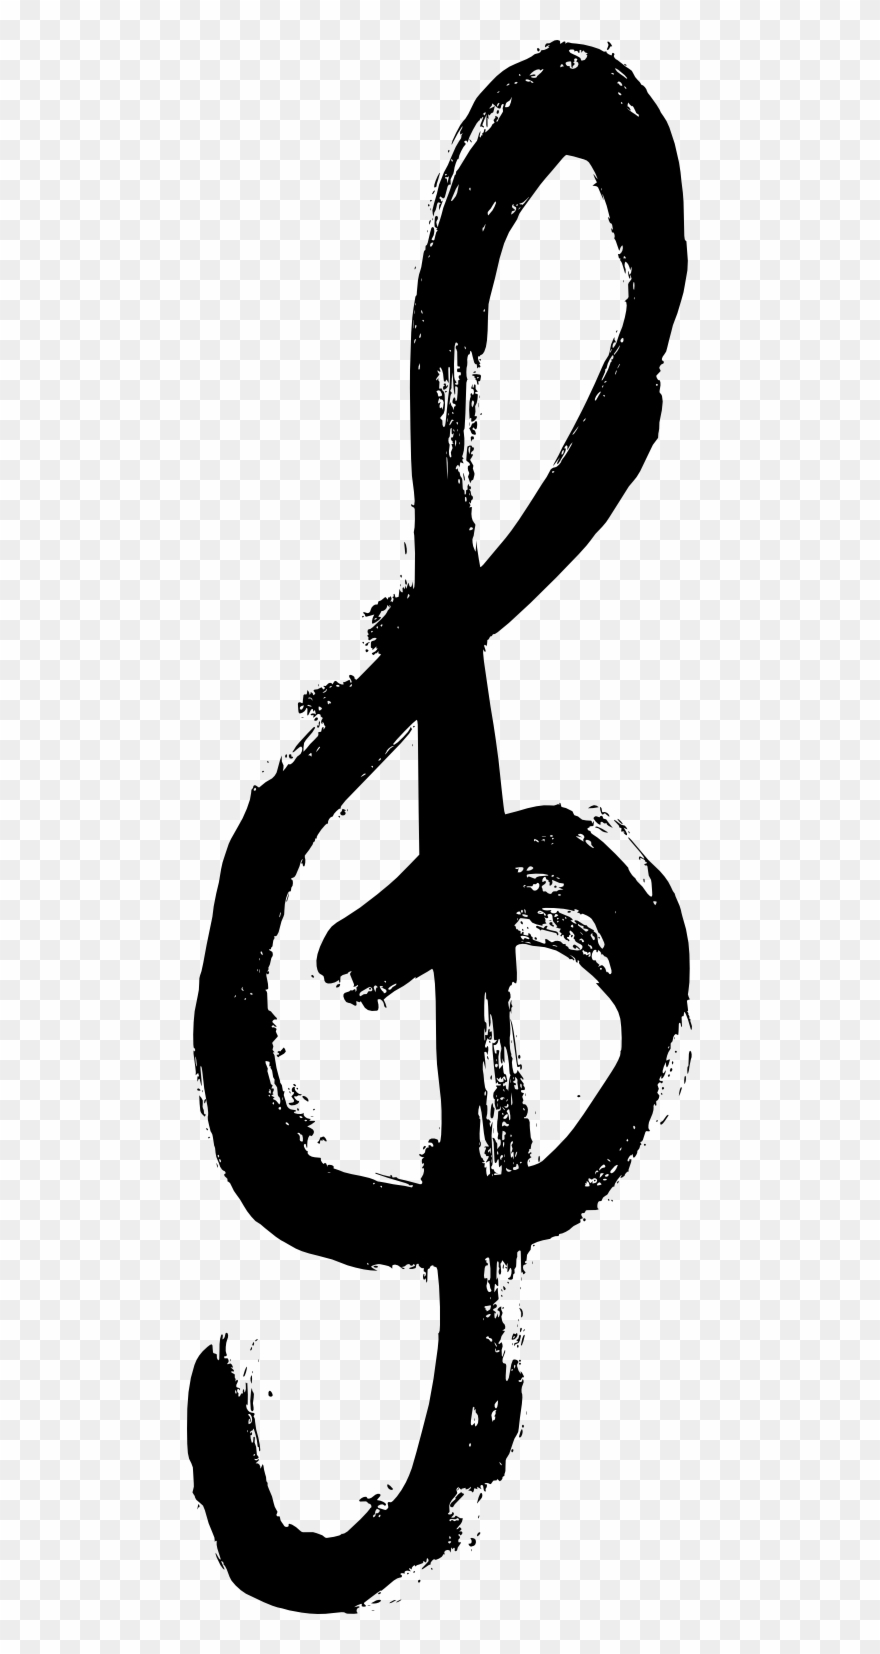 Infinity Symbol Png Transparent - Grunge Music Symbol Png Clipart